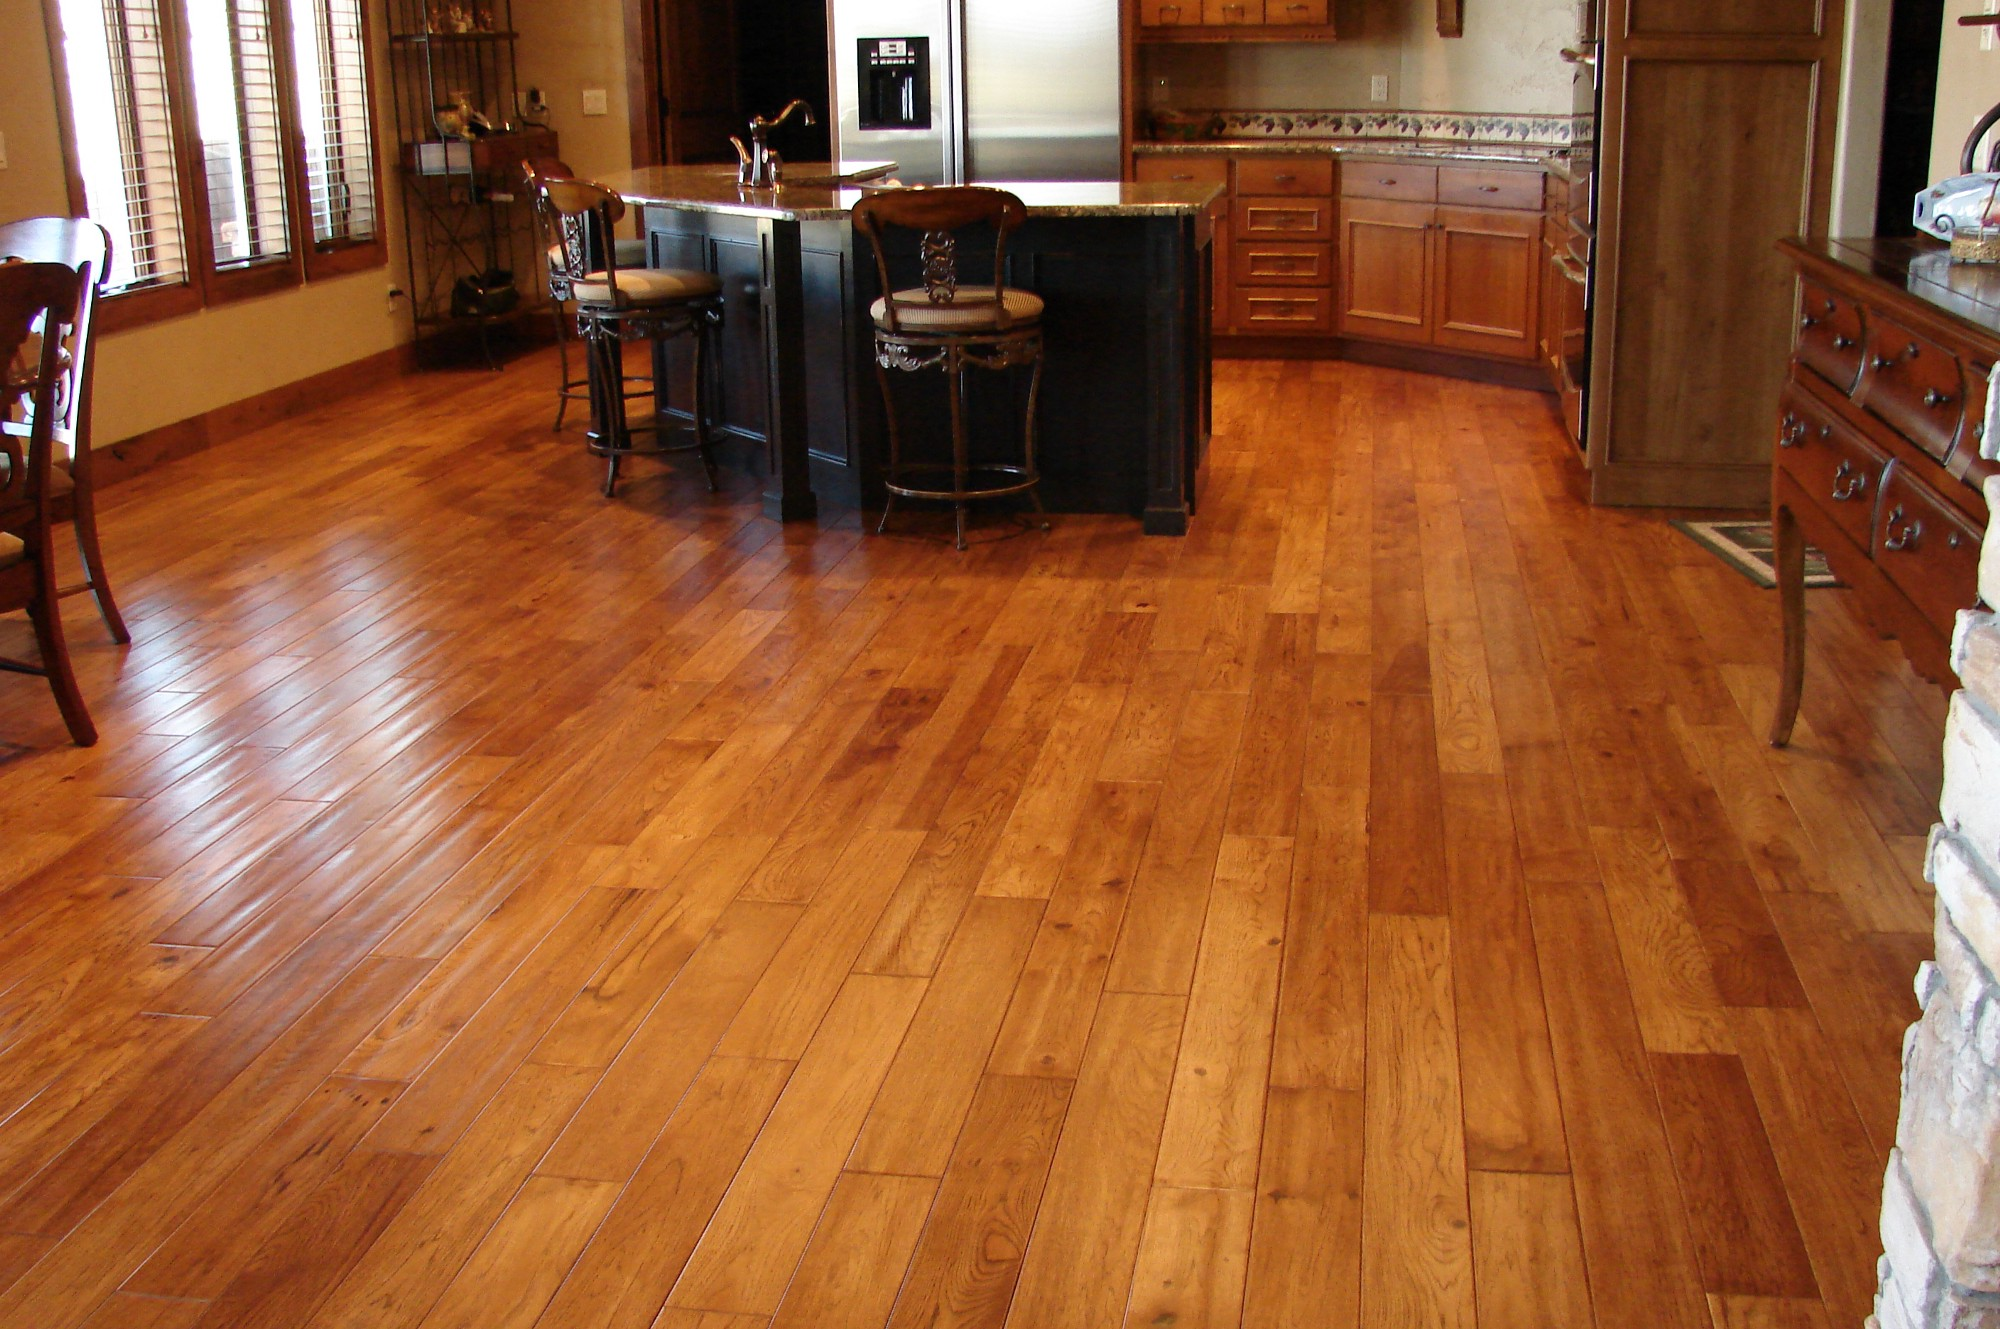 Fred Stone Company Owner Of Elegant Hardwood Floors Gives A Breakdown The Differences In Solid Flooring And Engineered